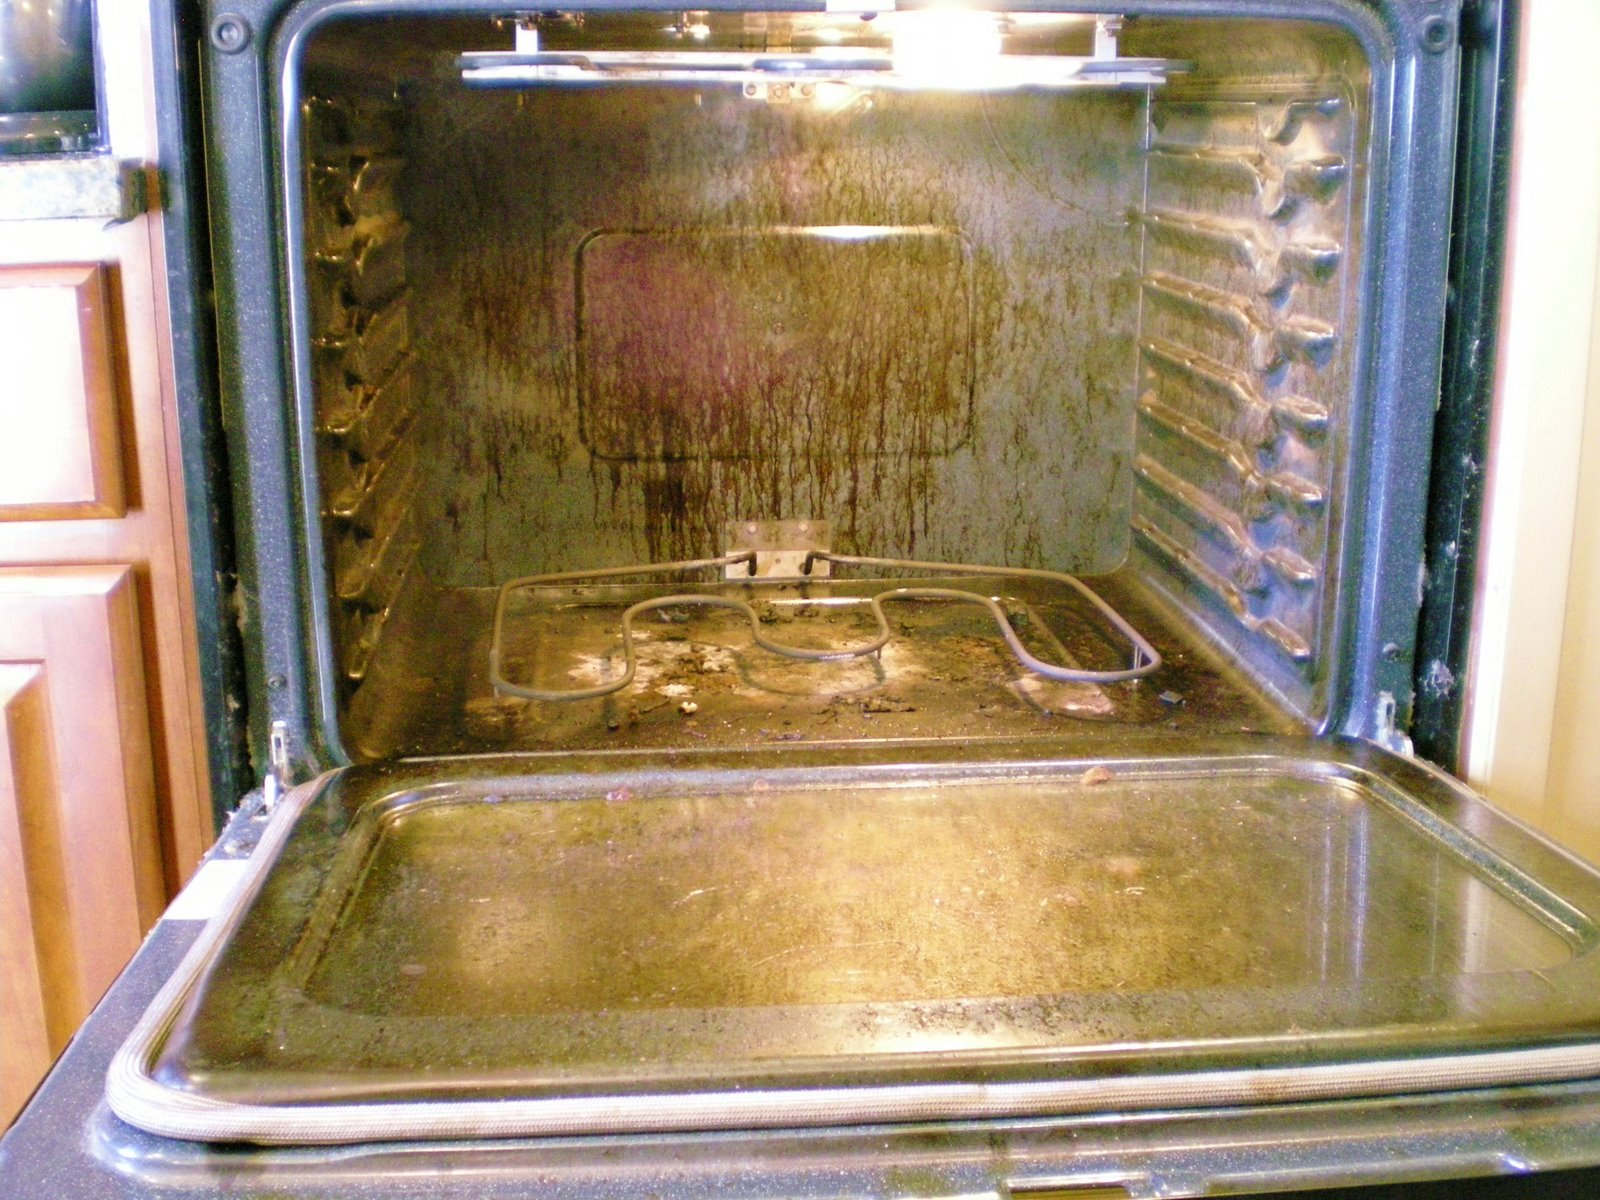 Dirty Oven So Sad